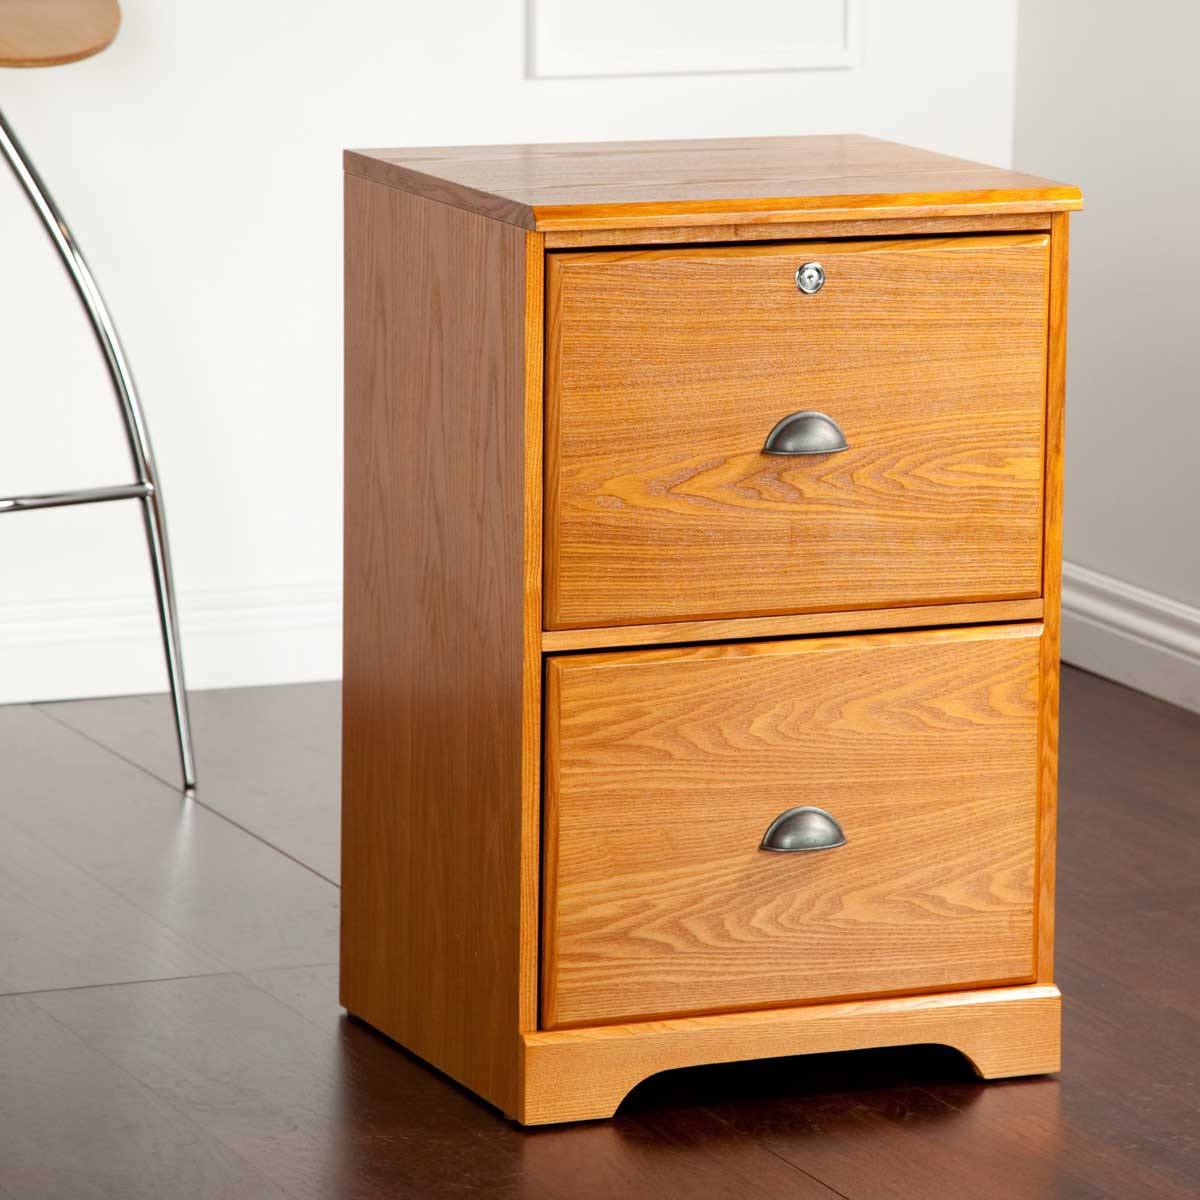 Natural Wooden File Cabinet Ikea Design With Double Draweretal Handle On Hardwood Floor